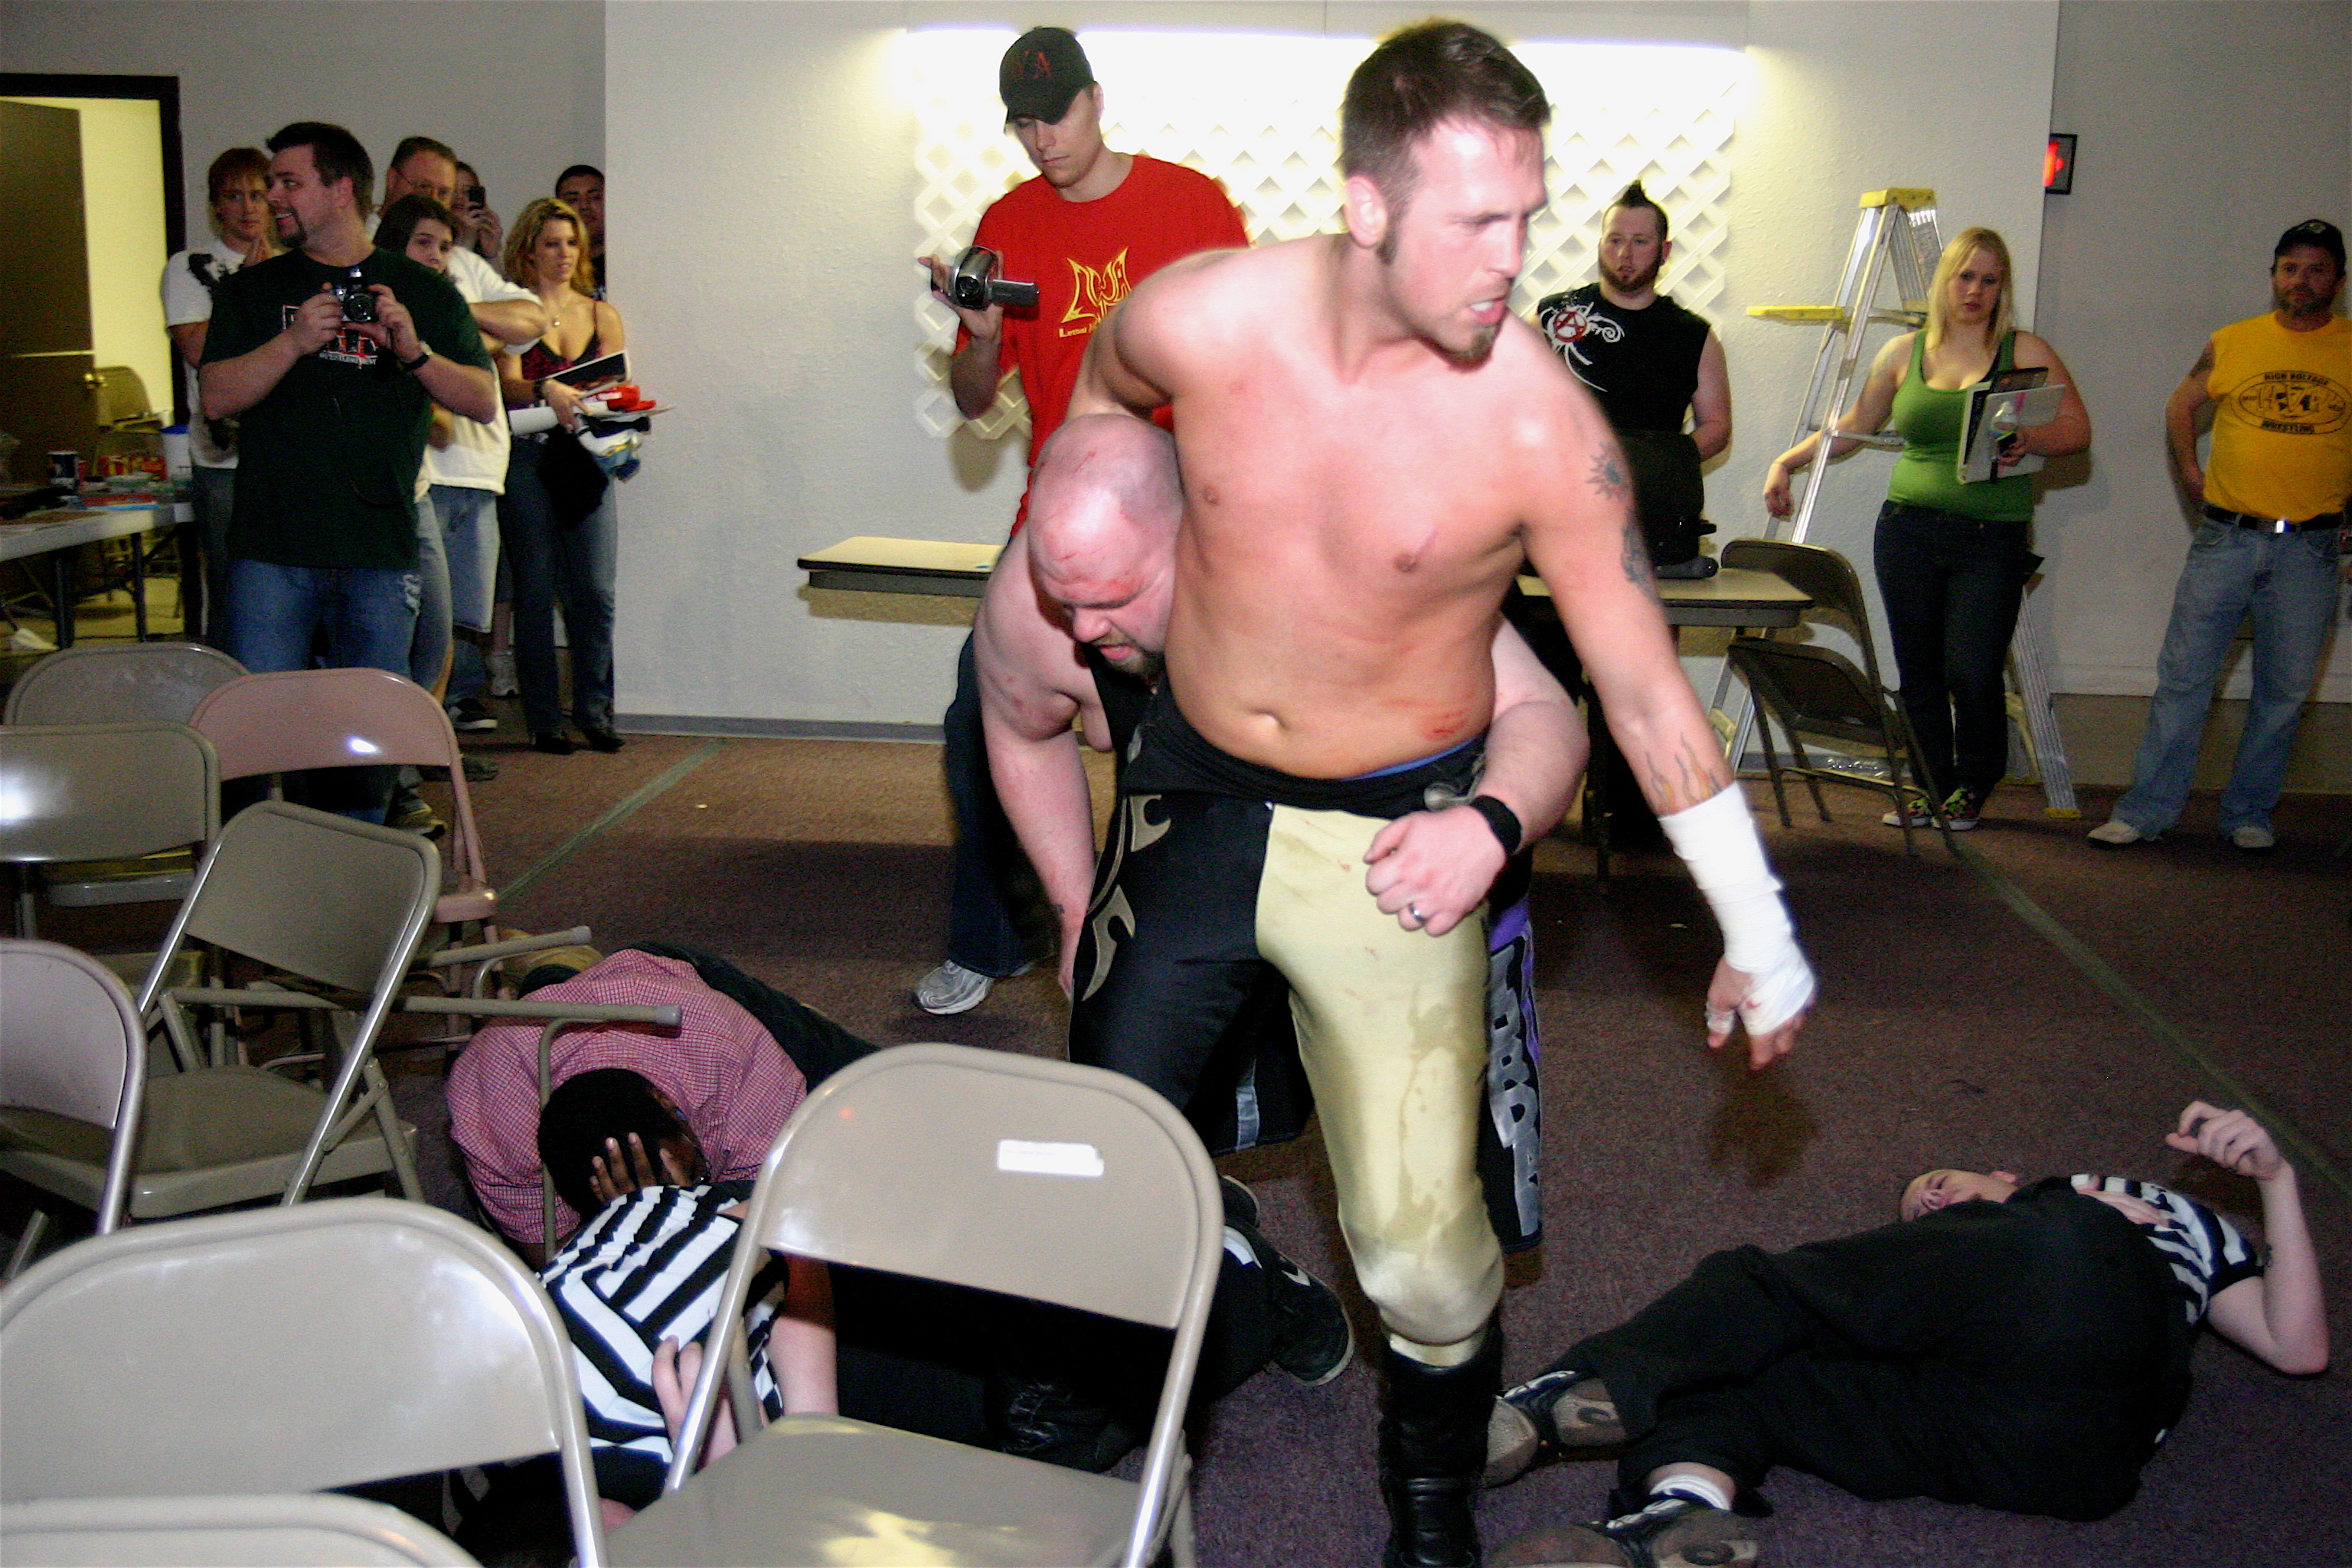 Bodies hit the floor when Wyatt and Lacey hooks up. This picture is from the fans bring the weapons match in March but the LWA Faithful was not please to see the The Belt Collector Jeremy Wyatt retain the LWA Championship and retire fan favorite Jordan Lacey in his hometown.